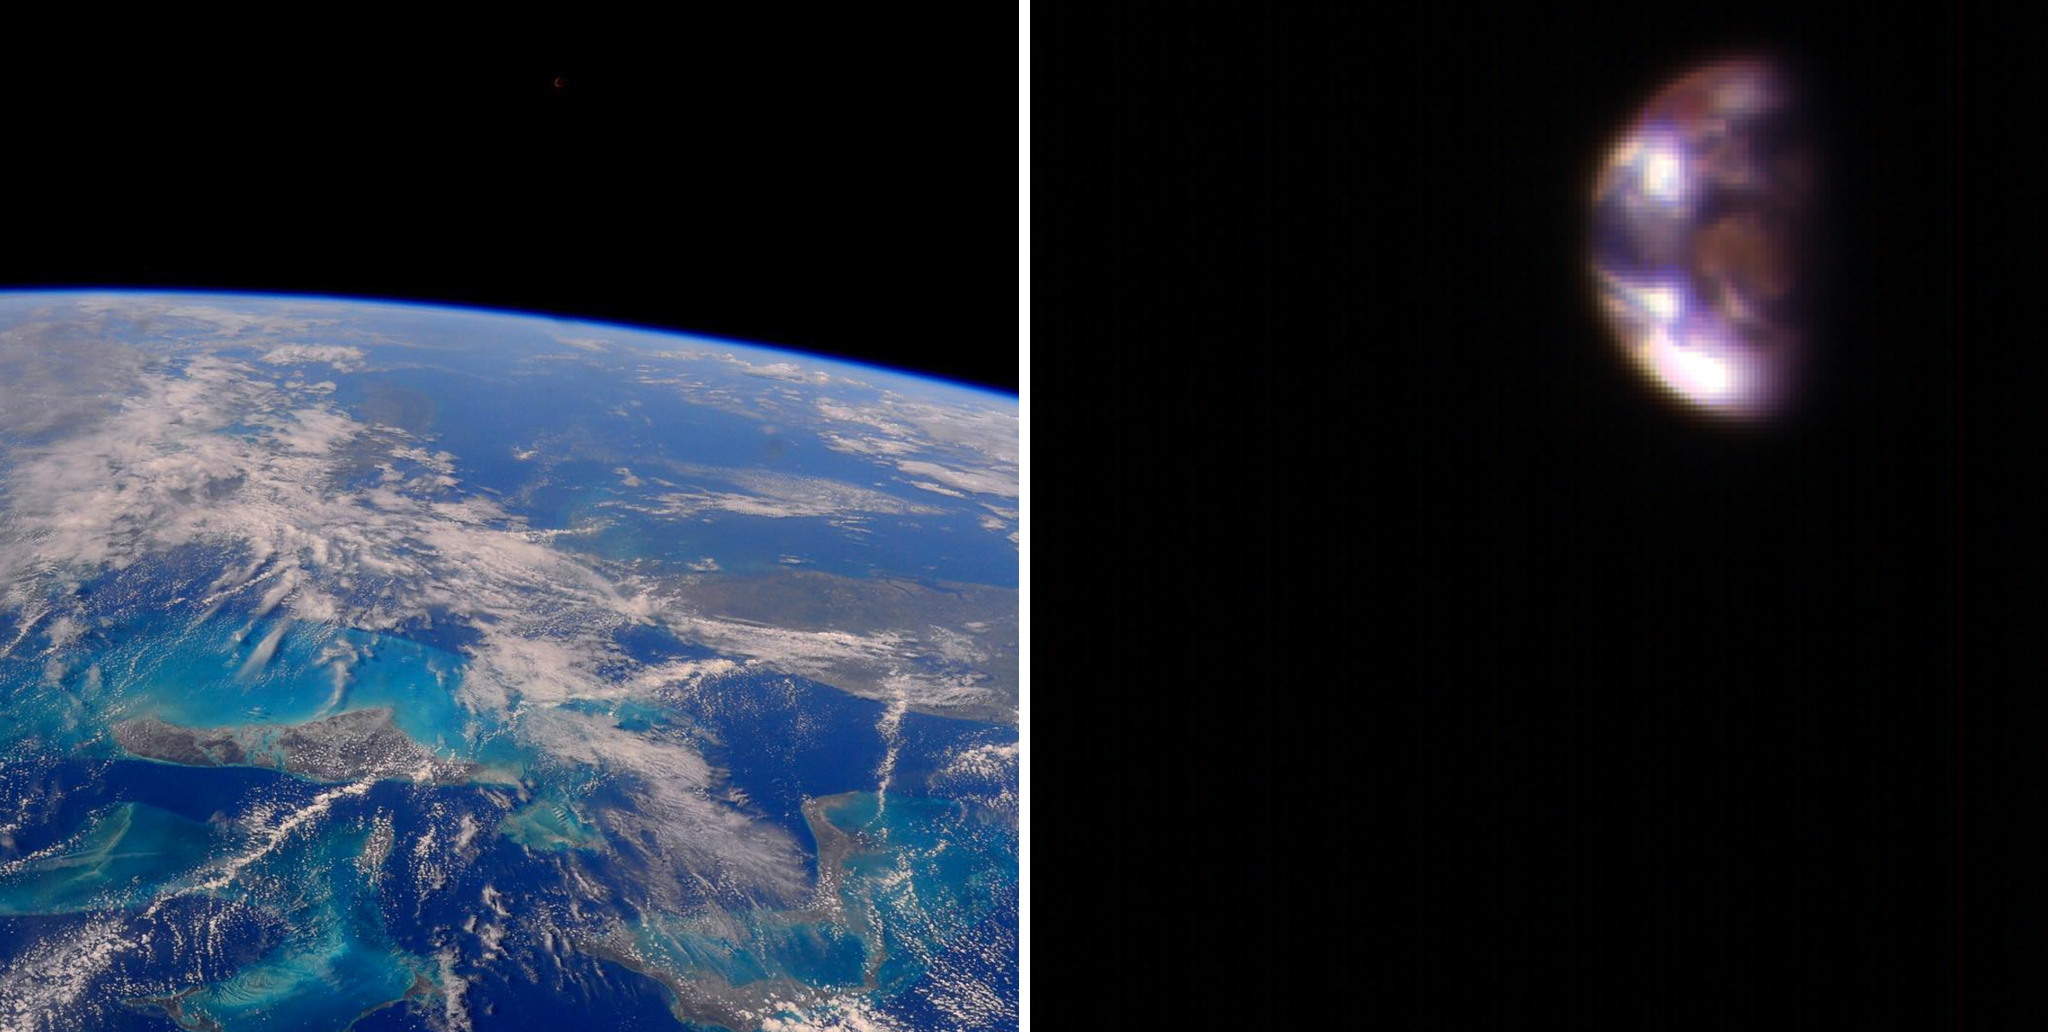 Left: View of Earth from the International Space Station. Right: A composite image of Earth from Mars. When the component photos used for the image on the right were taken, Mars was about 127 million miles from Earth.